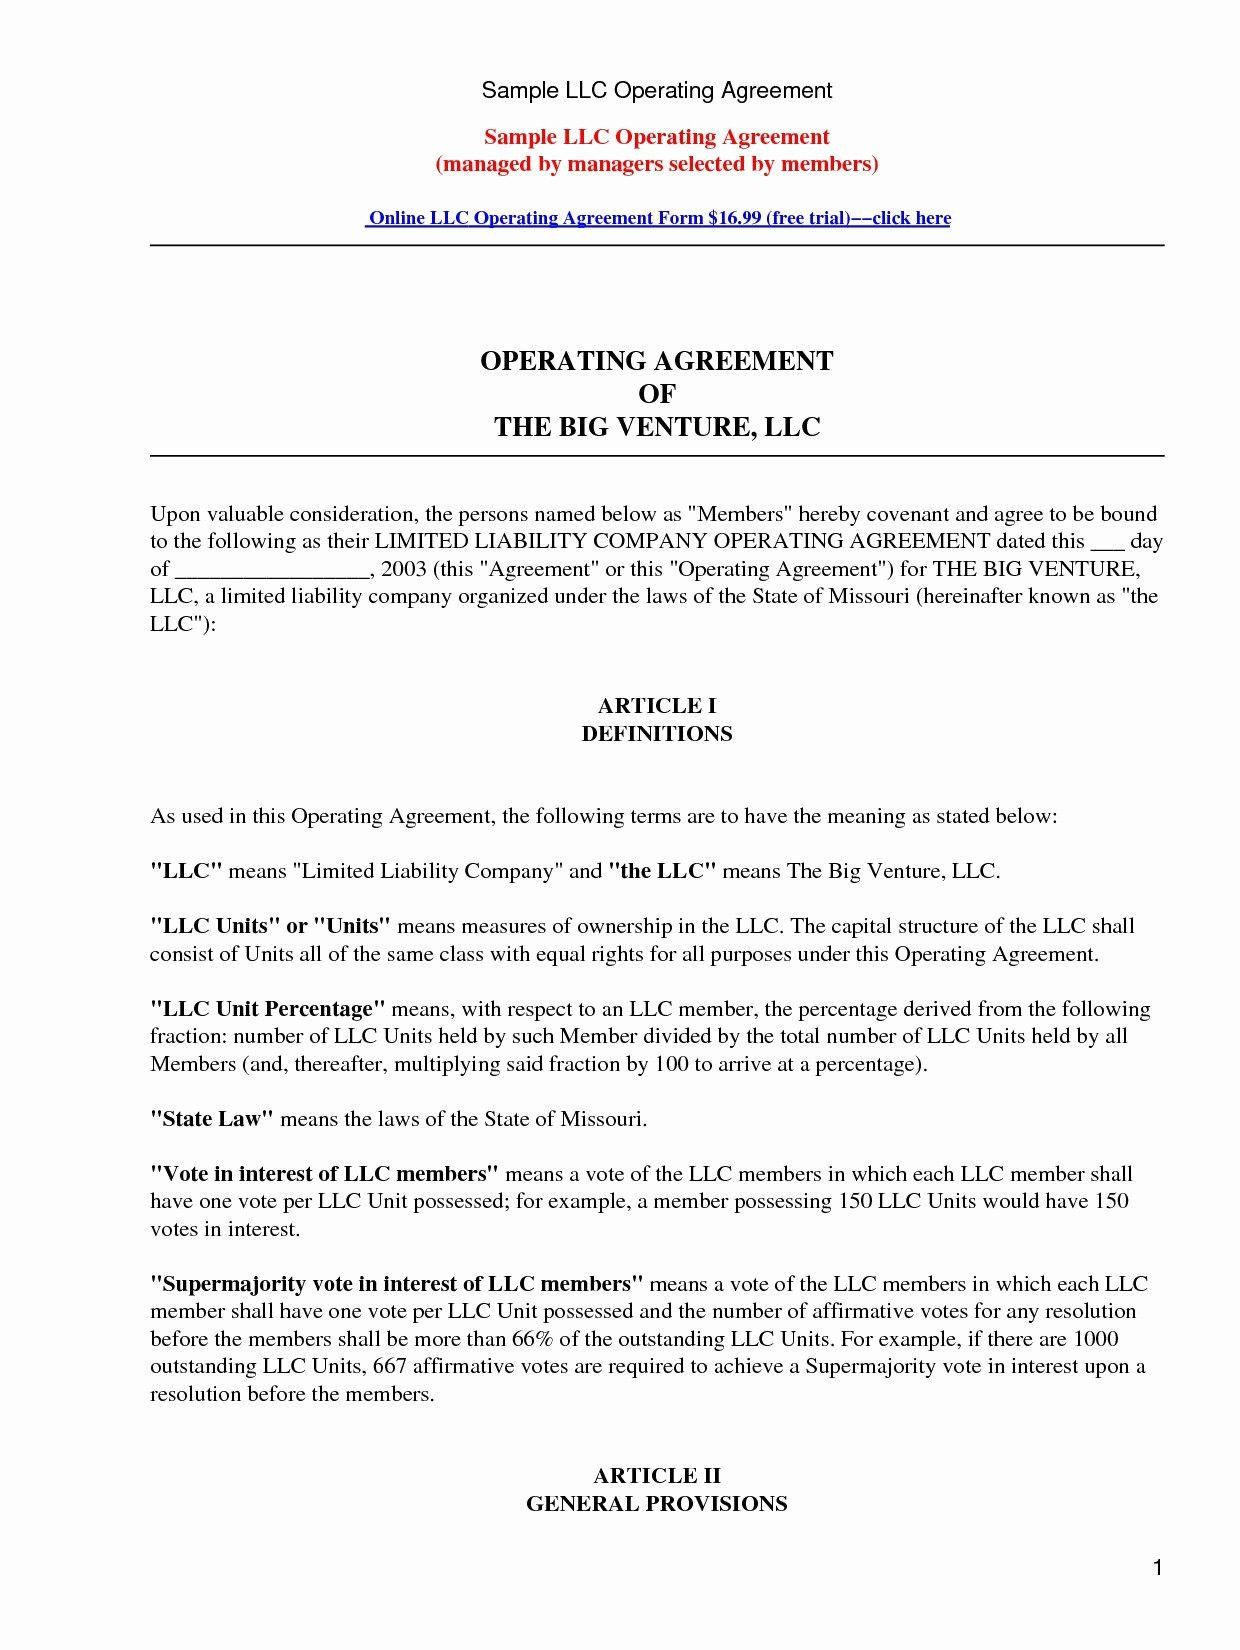 Corporate Operating Agreement Template Beautiful Partnership Contracts Samples Beautiful Bus Separation Agreement Template Contract Template Proposal Templates Missouri llc operating agreement template